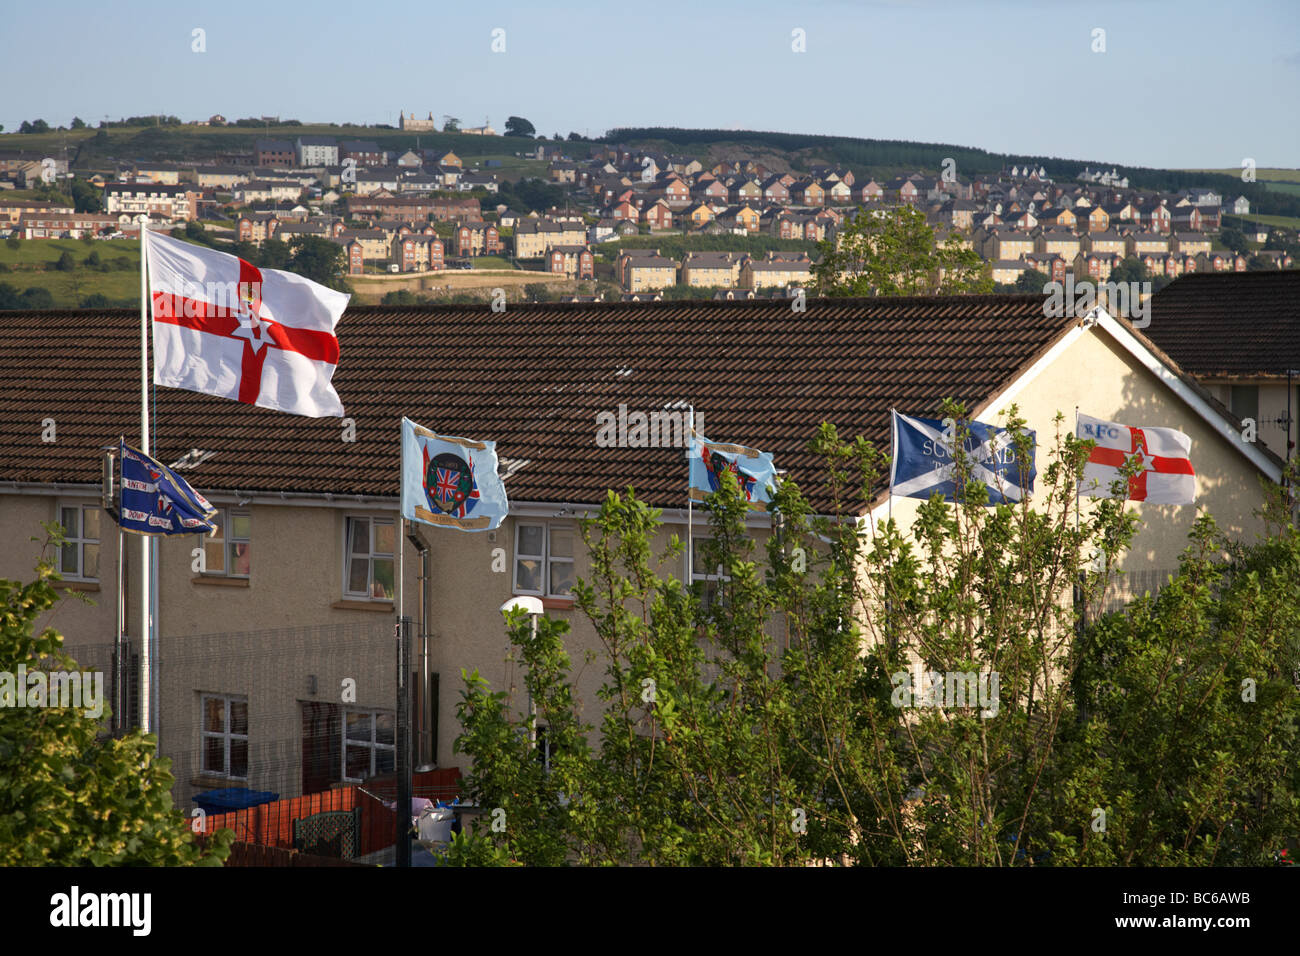 Flag gallery british county flags - Stock Photo The Fountain Estate Flying Loyalist Flags In Derry City County Derry Northern Ireland Uk